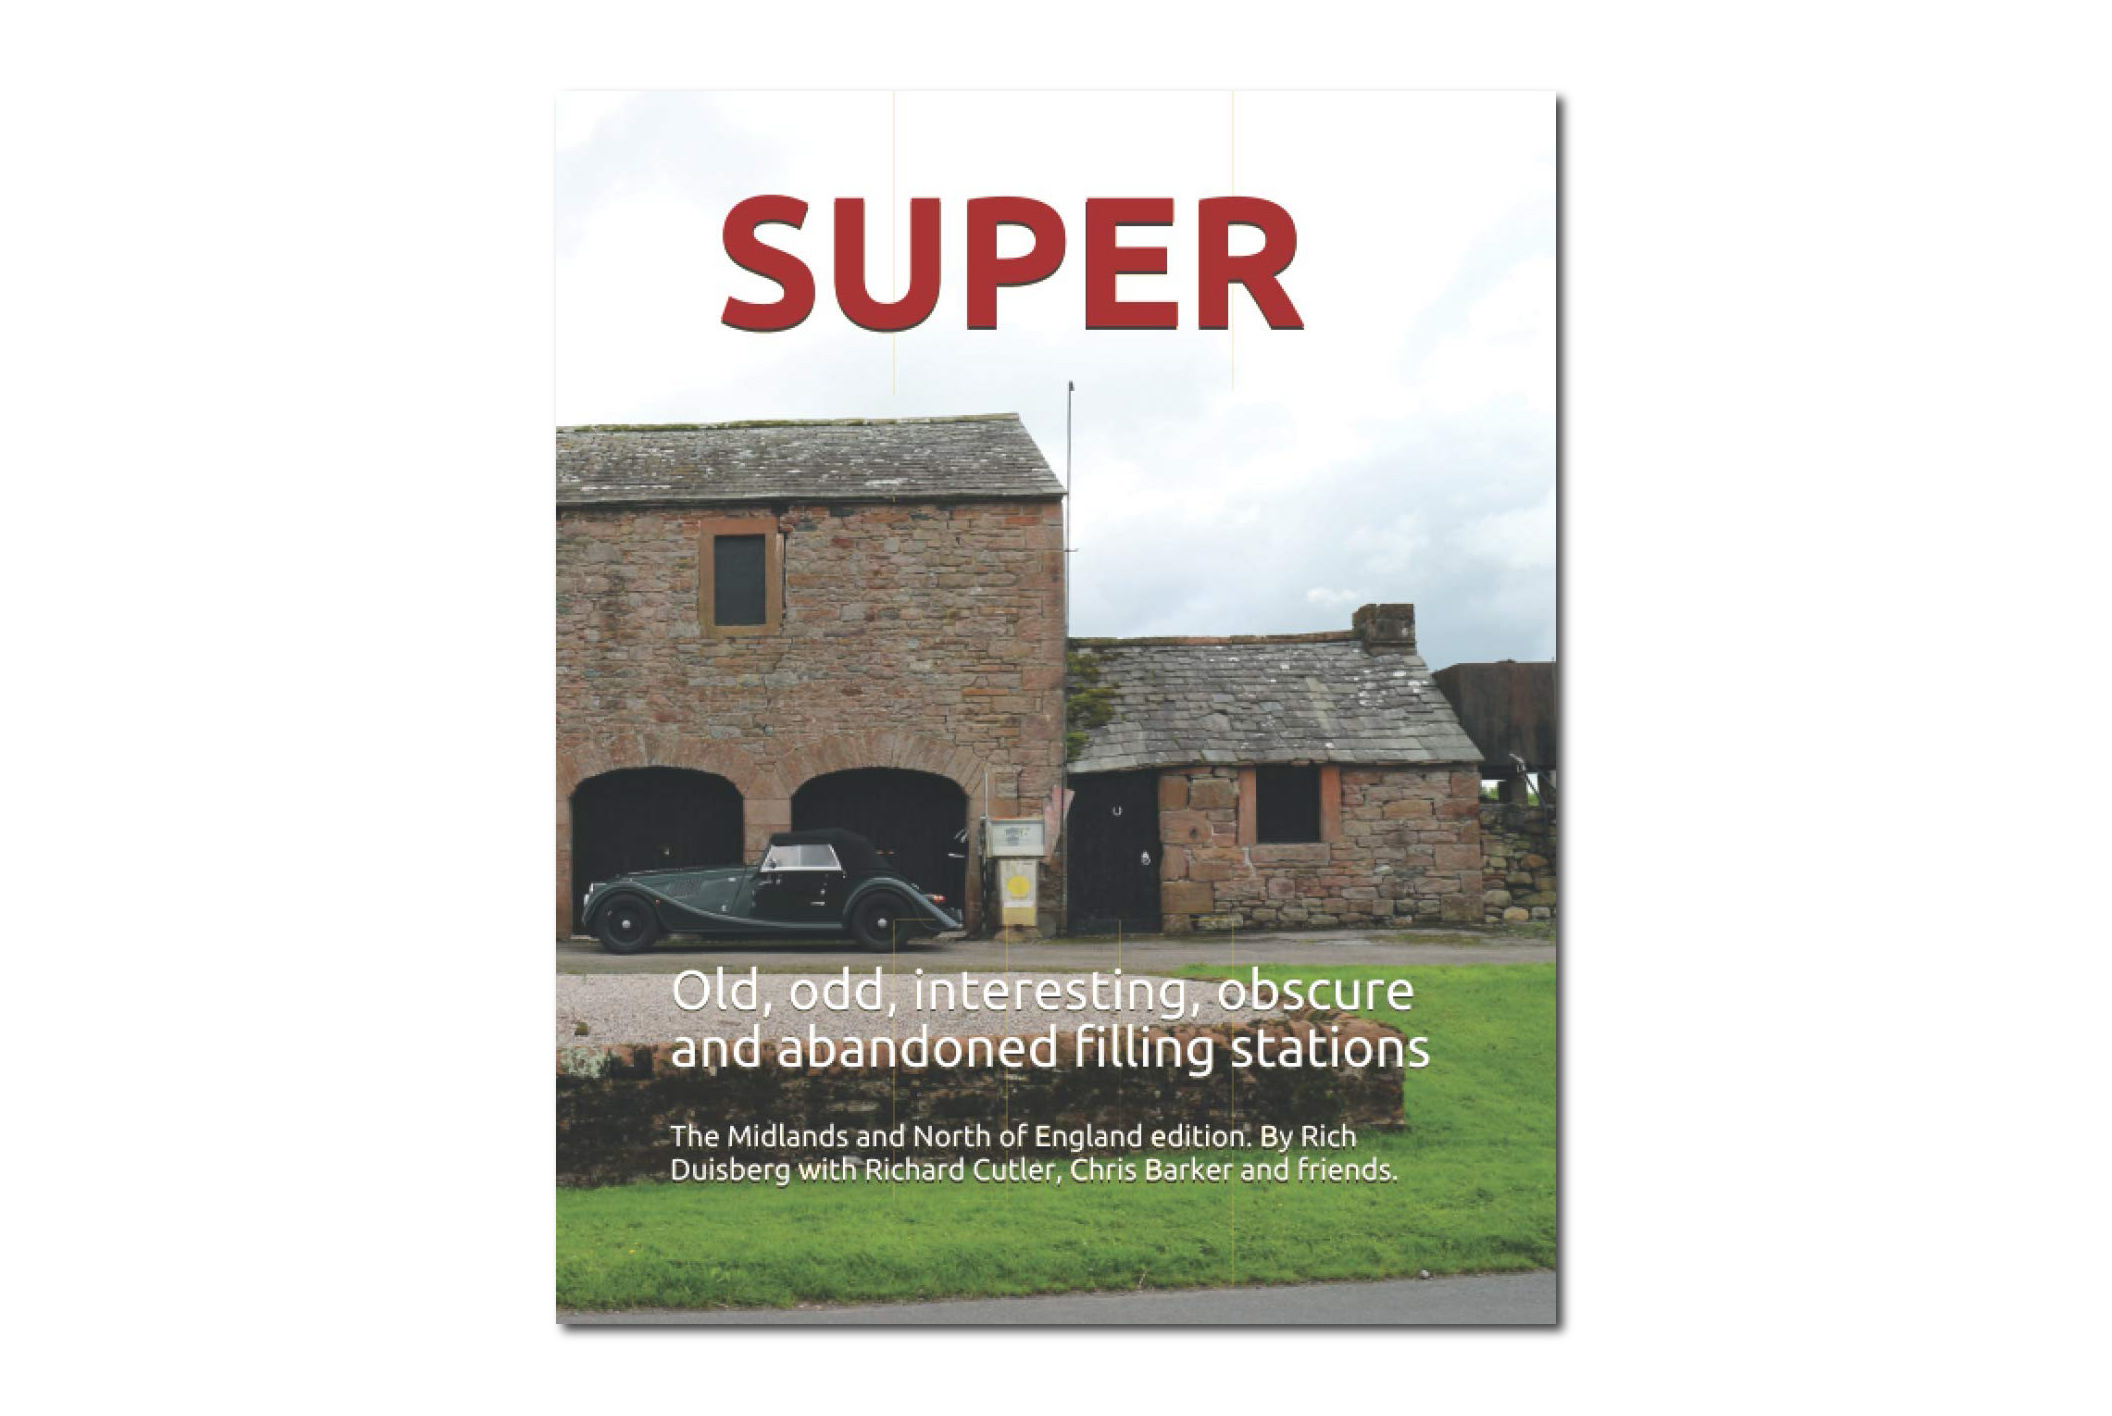 SUPER Old, Odd, Interesting, Obscure, and Abandoned Filling Stations